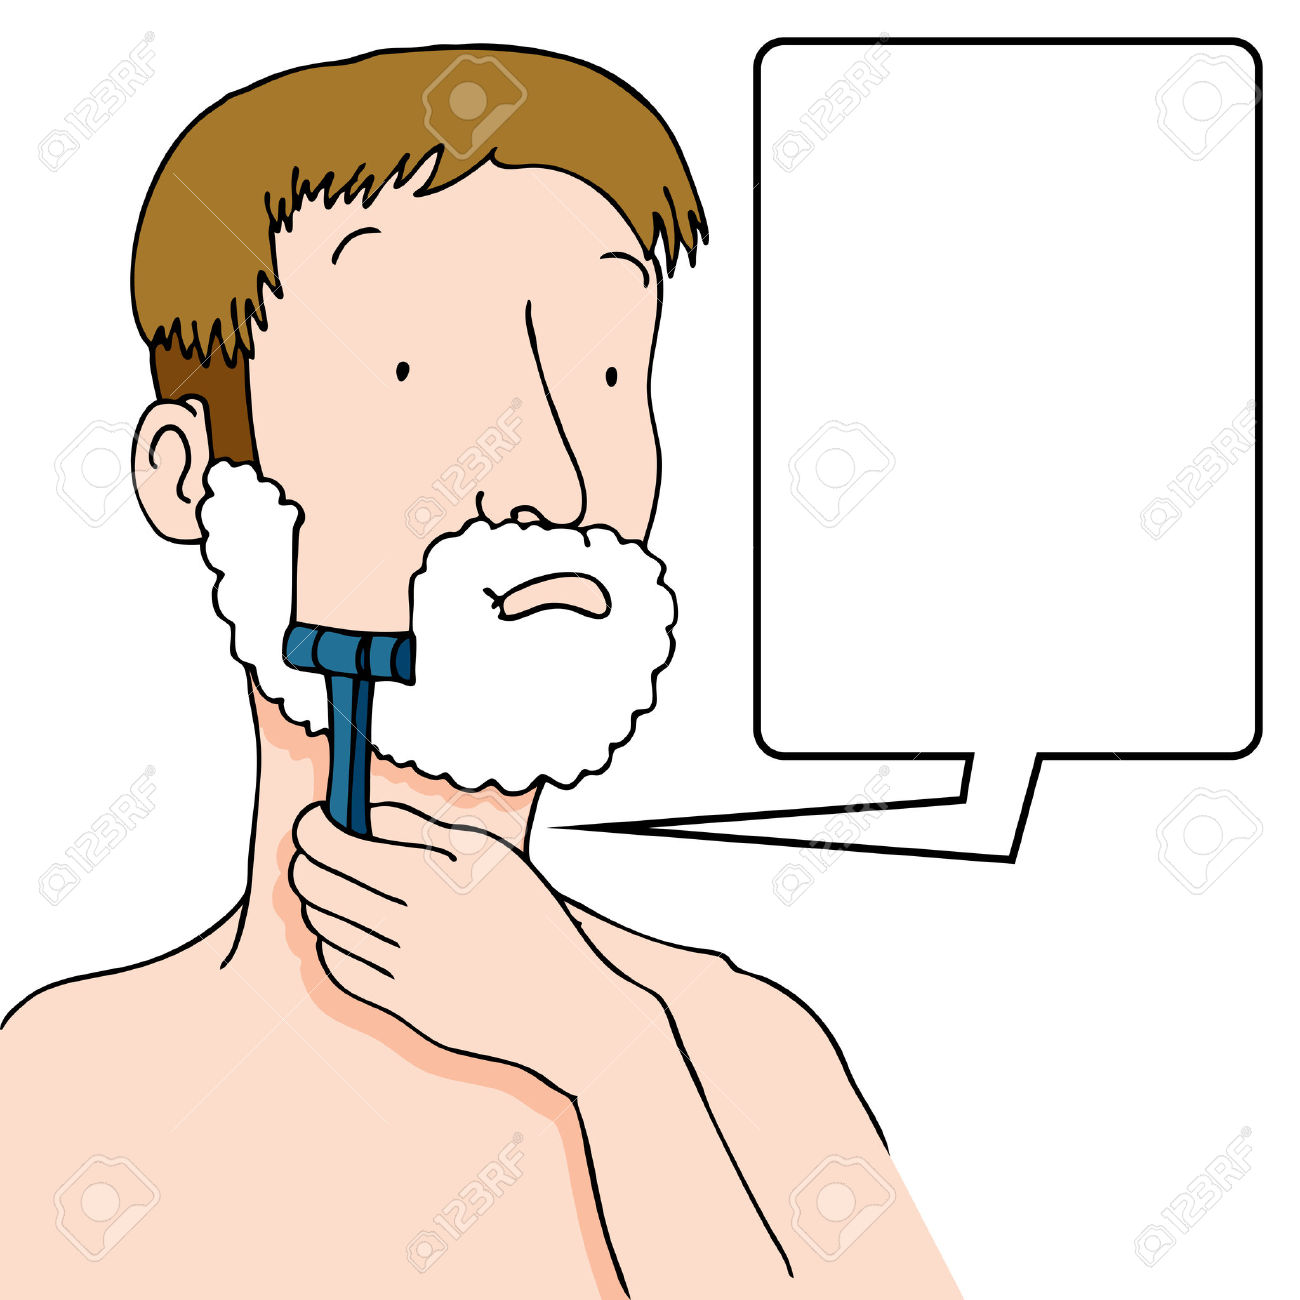 Clipart man shaving.